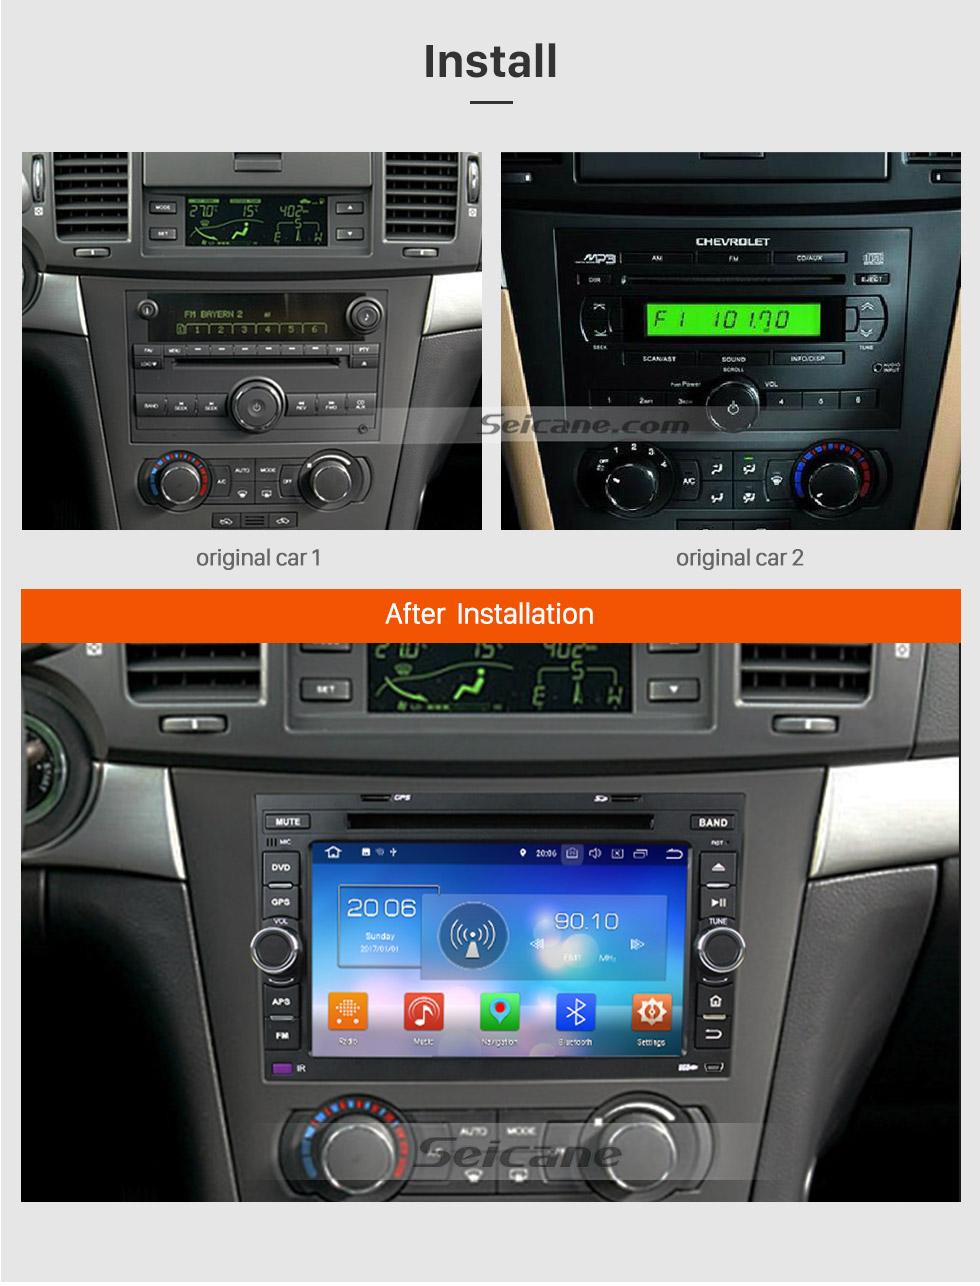 Seicane 2006-2011 Chevy Chevrolet EPICA Android 8.0 HD 1024*600 touch screen DVD player GPS  navigation system  Bluetooth Radio  OBD2 DVR TV 1080P Video 3G WIFI Steering Wheel Control USB SD backup camera Mirror link